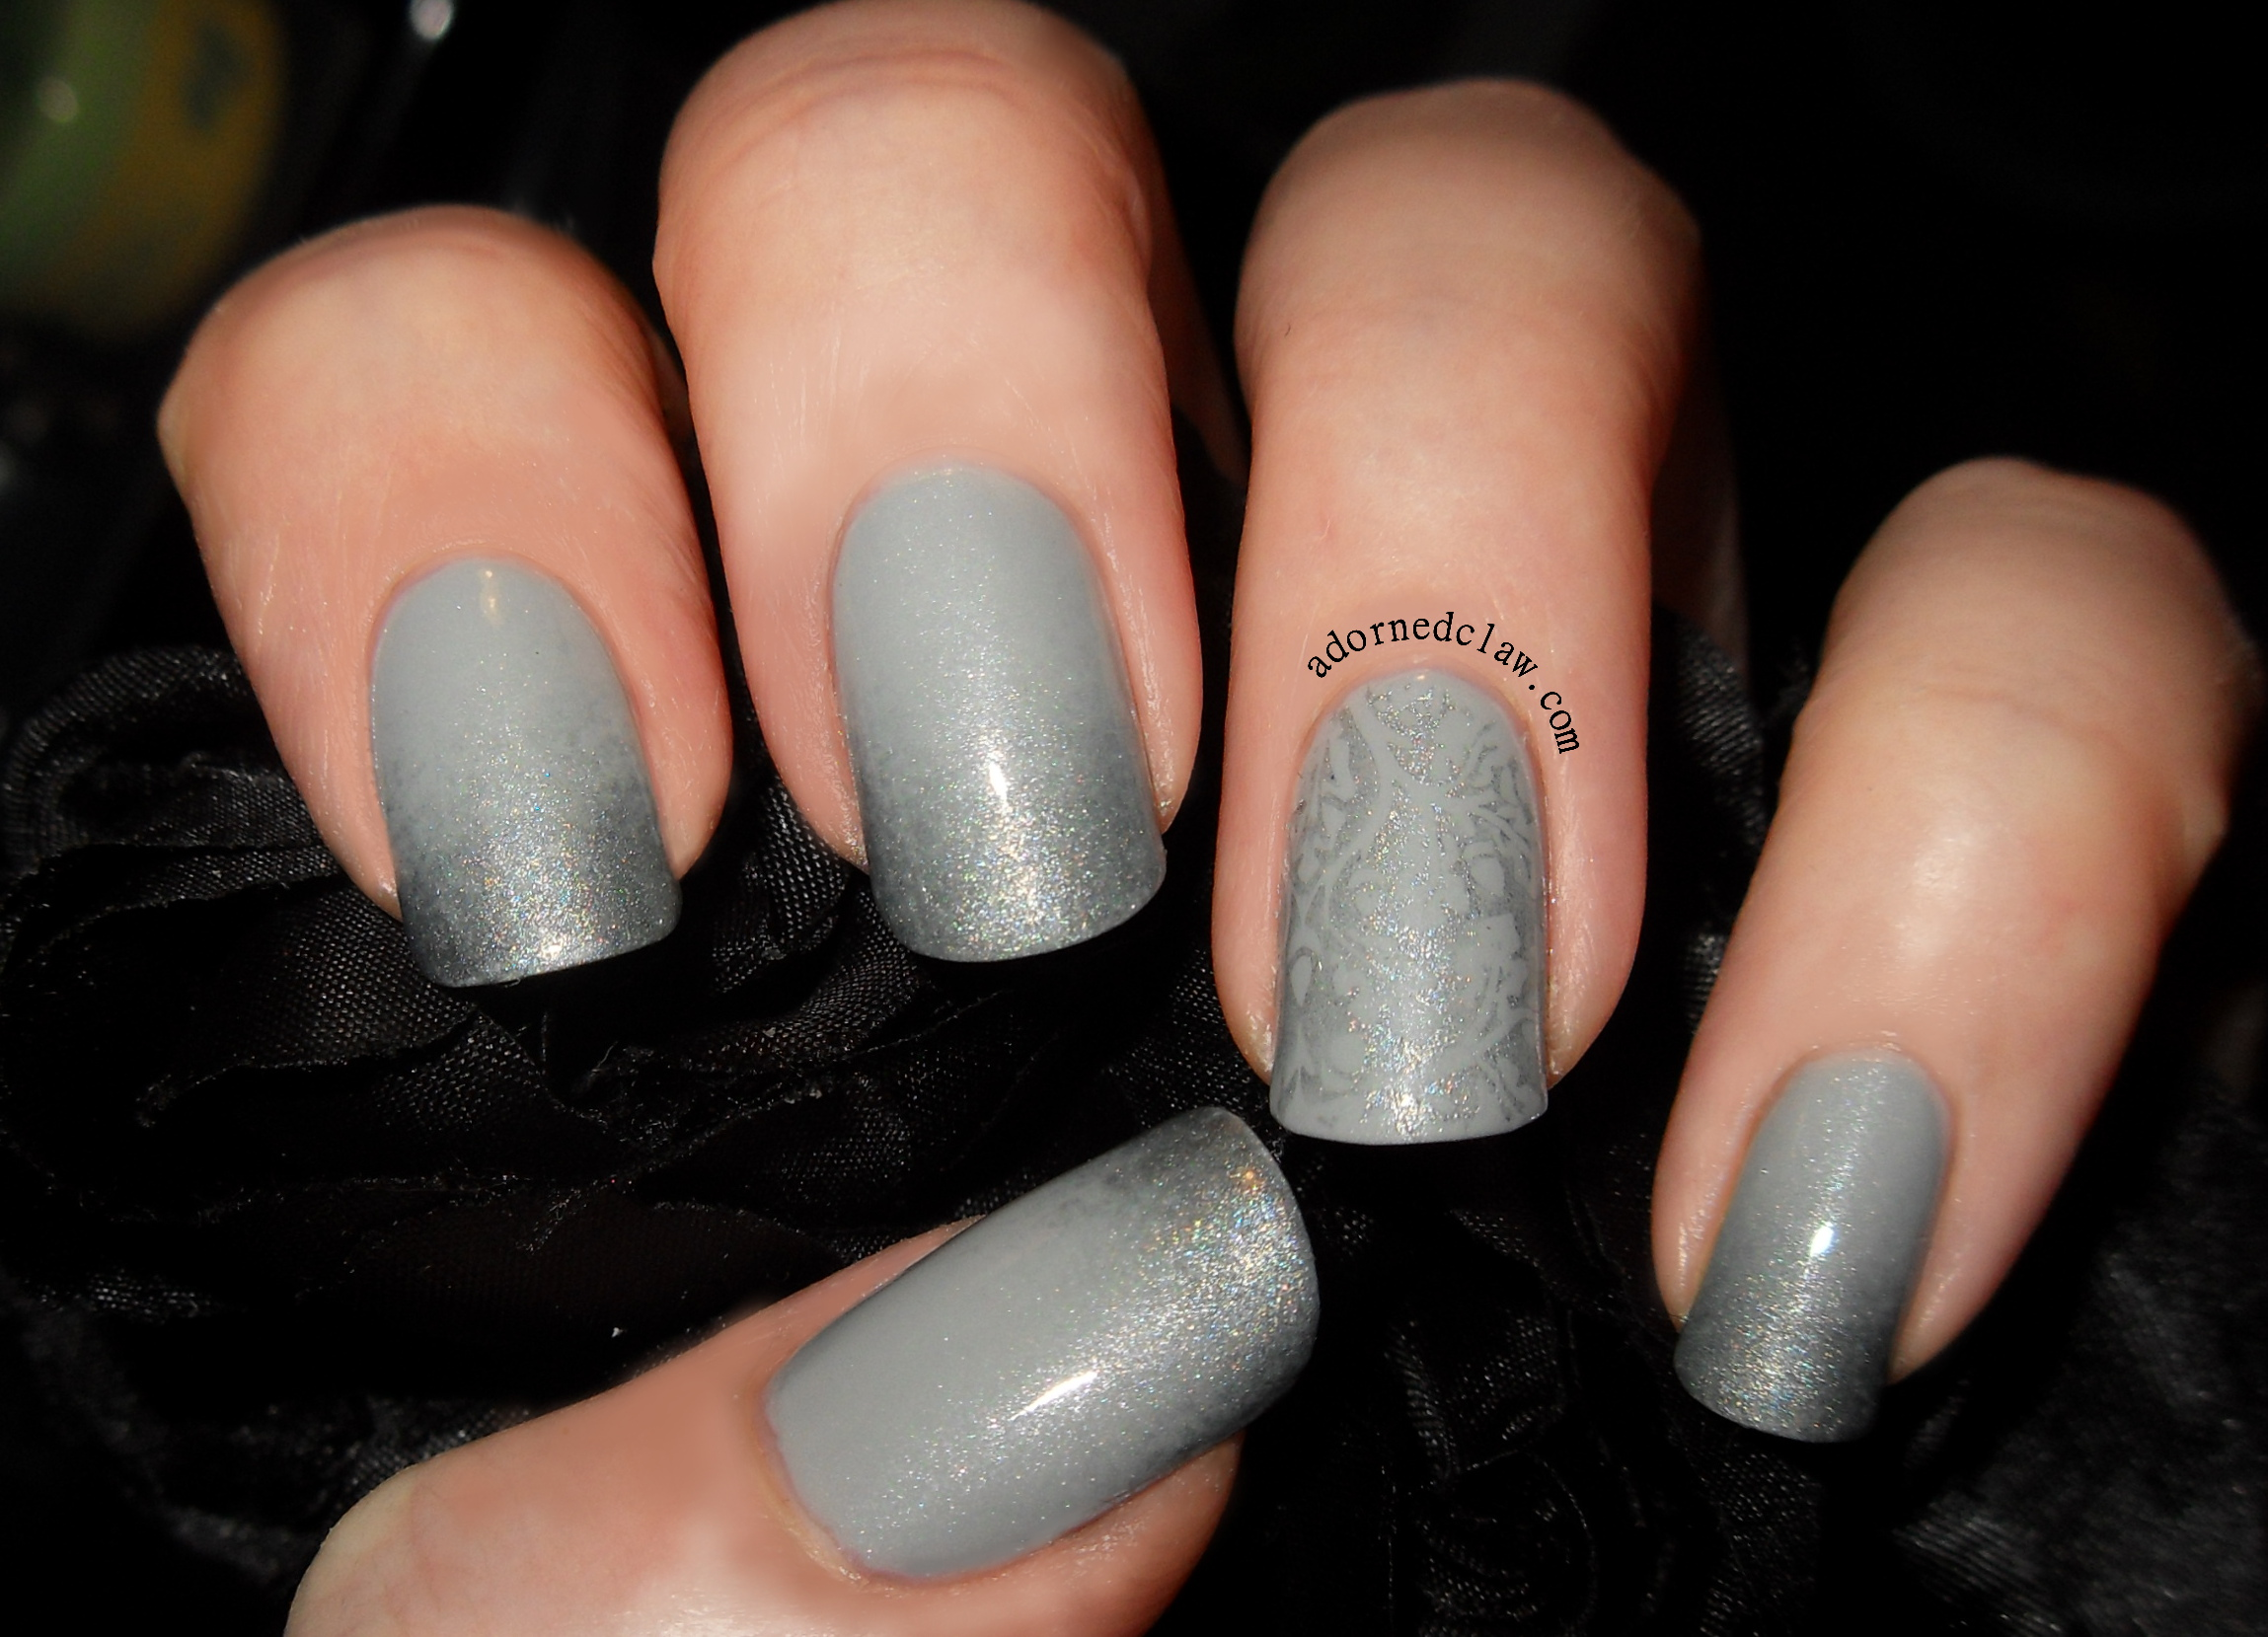 Subtle Silver and Grey Nail Art | The Adorned Claw